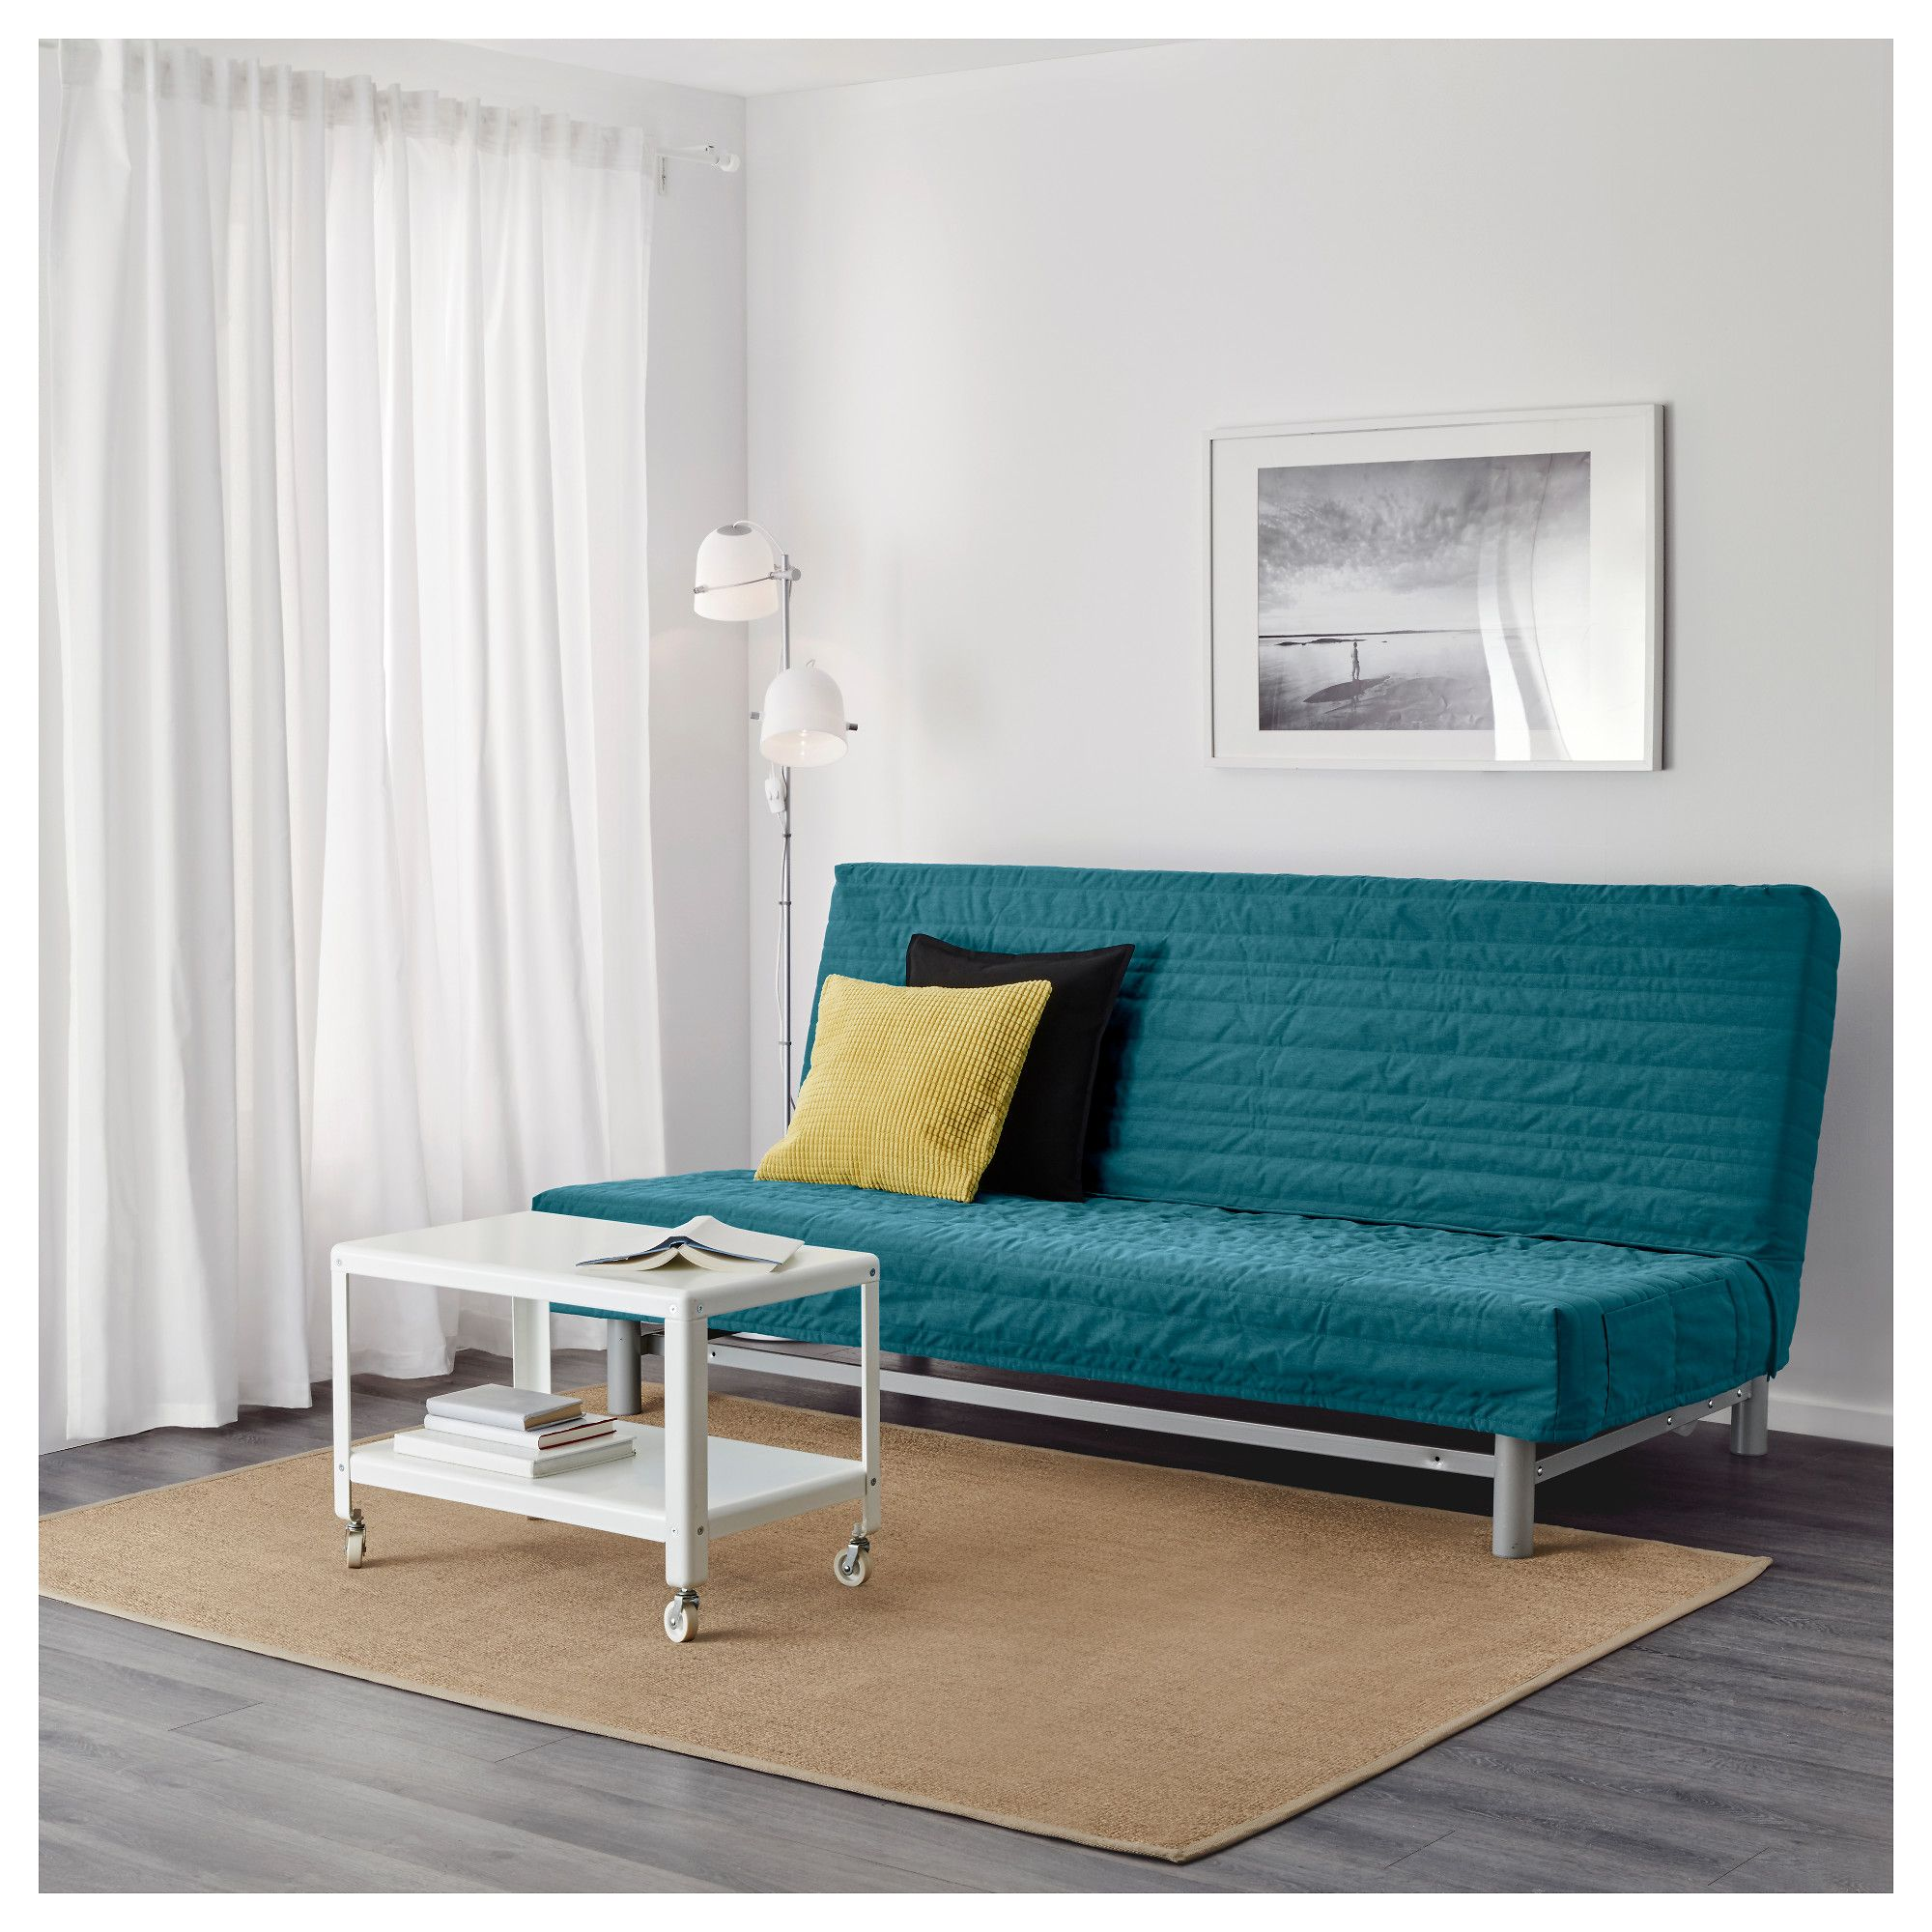 2er Bettsofa Ikea Solsta Ikea Beddinge LÖvÅs Three Seat Sofa Bed Readily Converts Into A